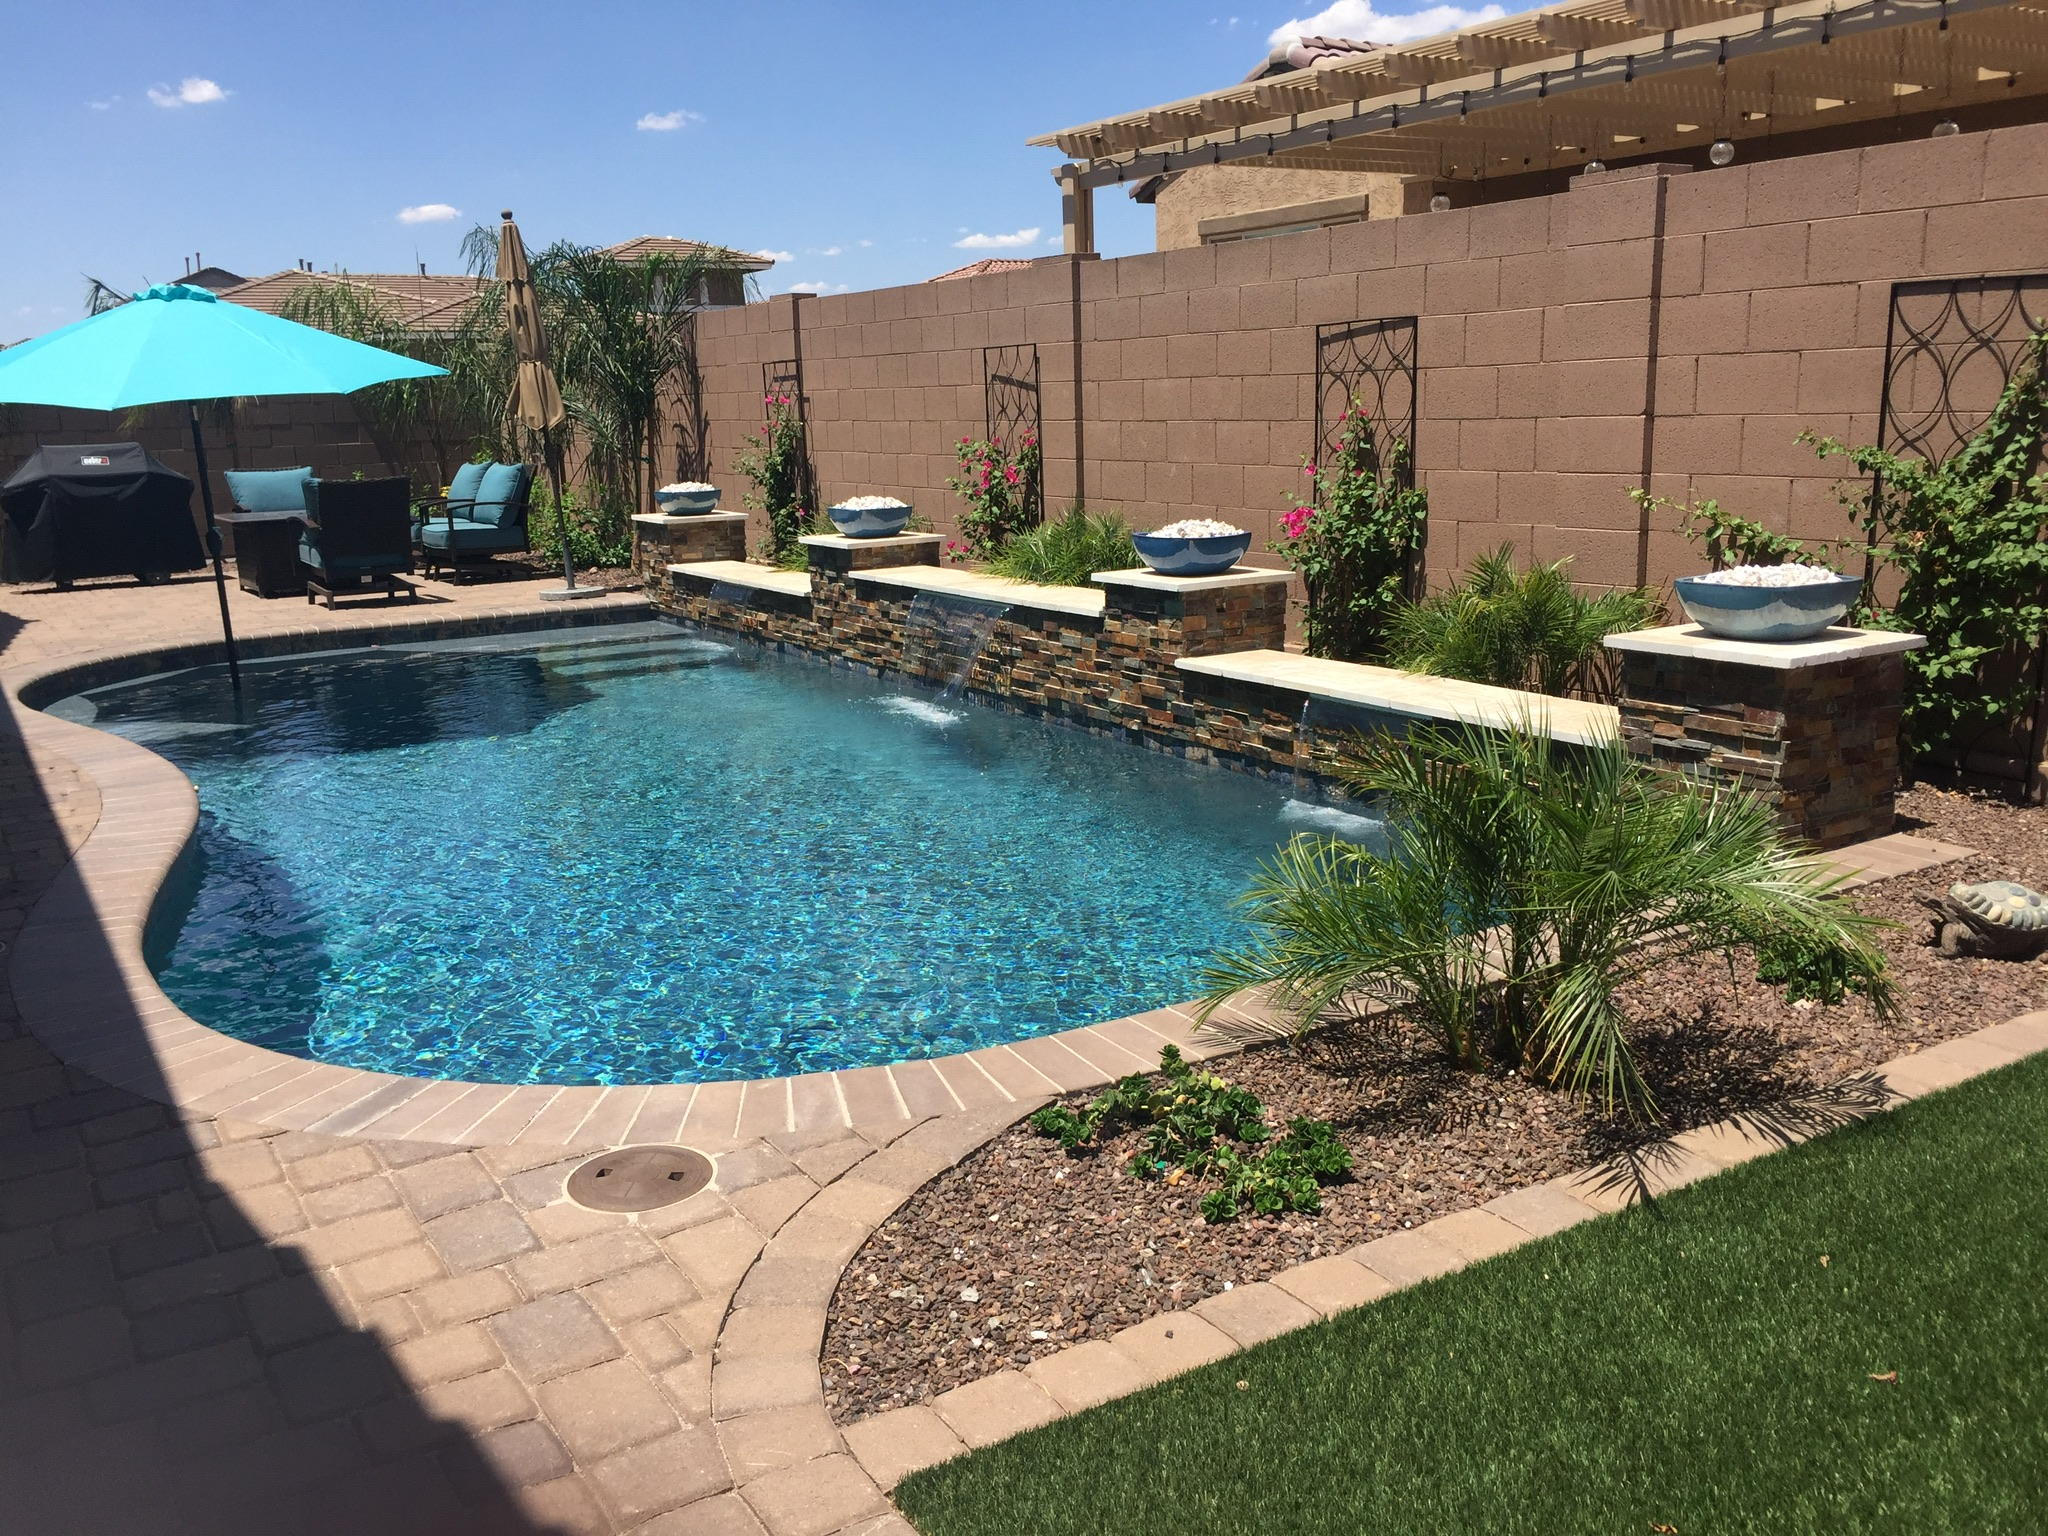 Pool Build Highlight: The Lickar Family of Mesa, AZ